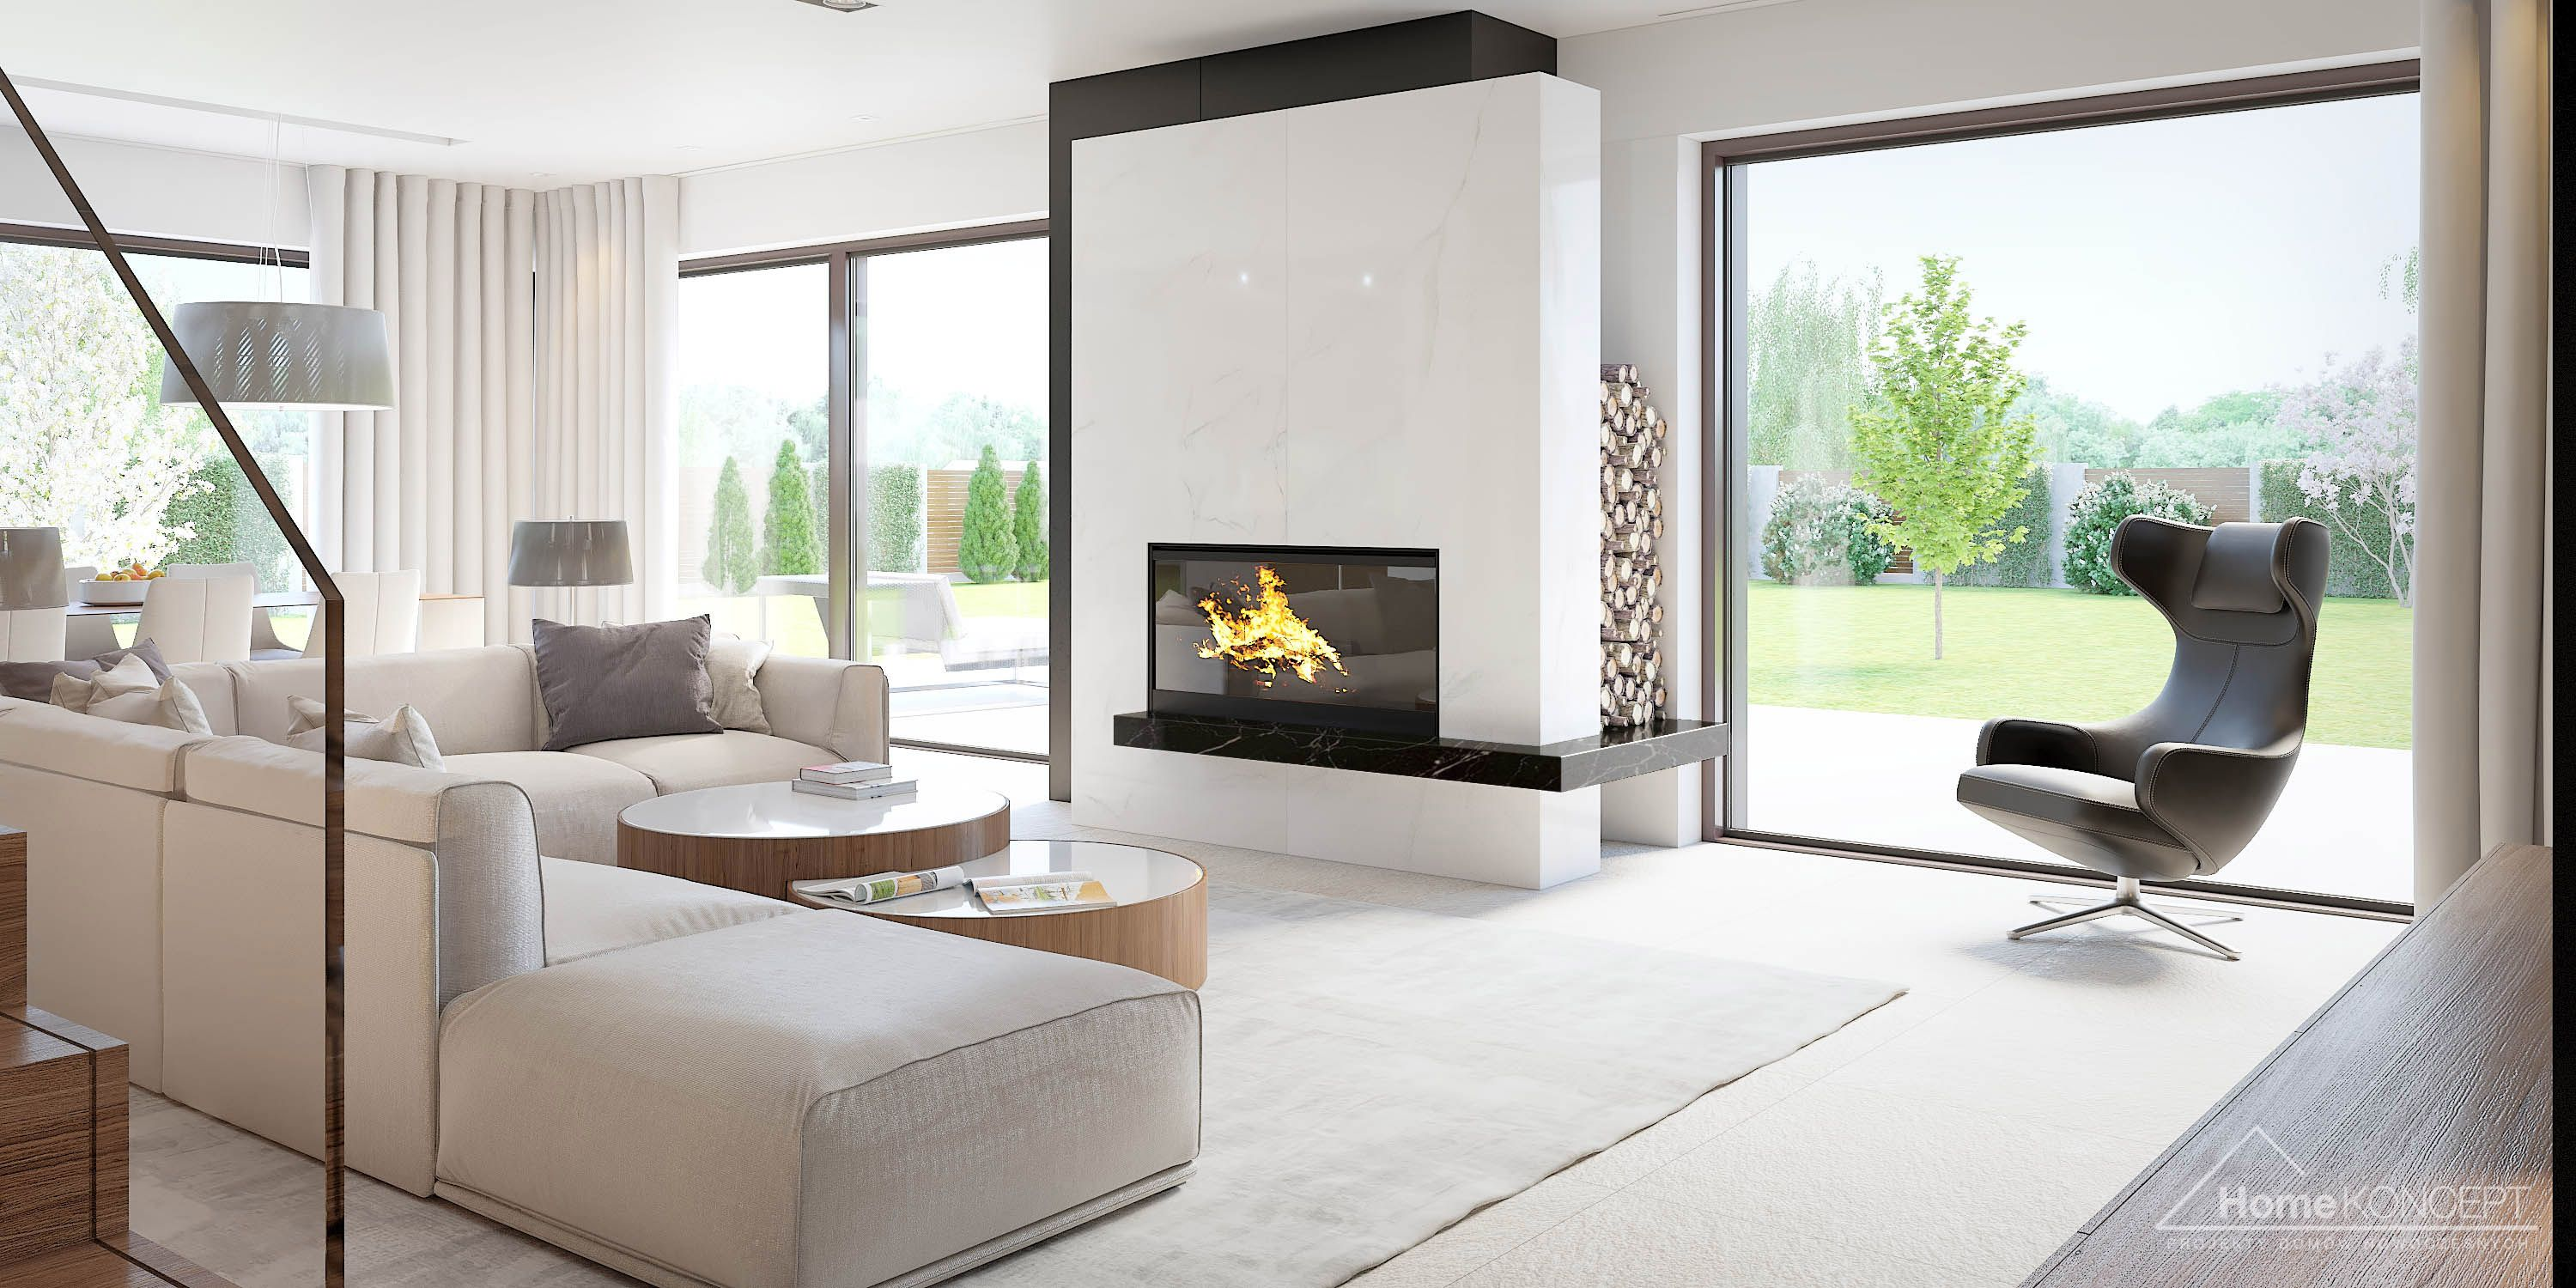 Homekoncept Living Room Decor Apartment House Rooms Home Fireplace